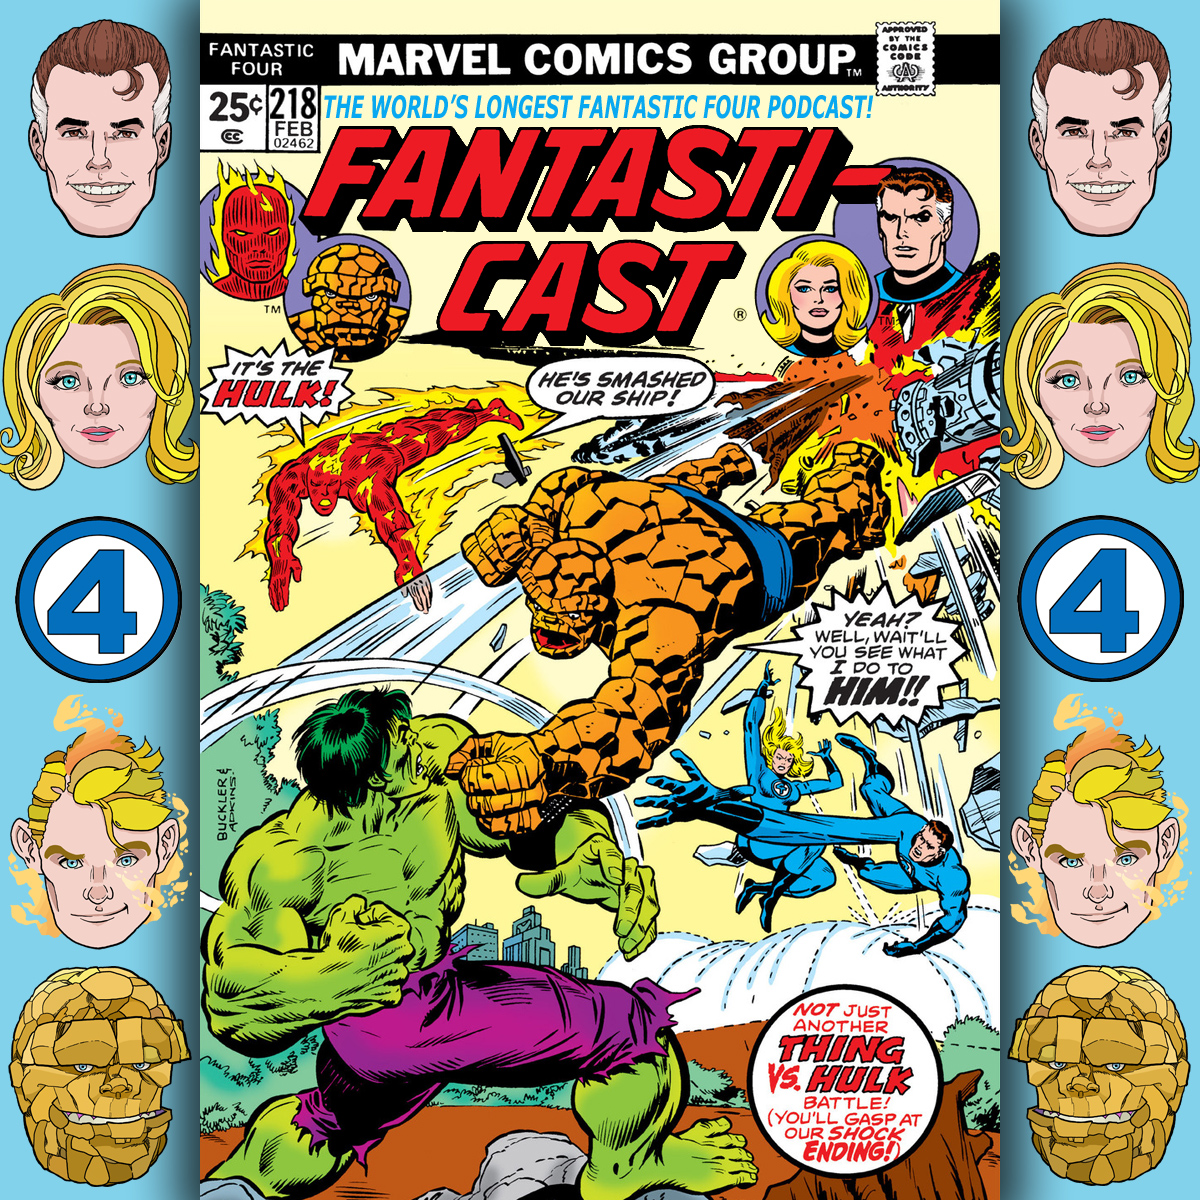 Episode 218: Fantastic Four #166 - If It's Tuesday, It Must Be The Hulk